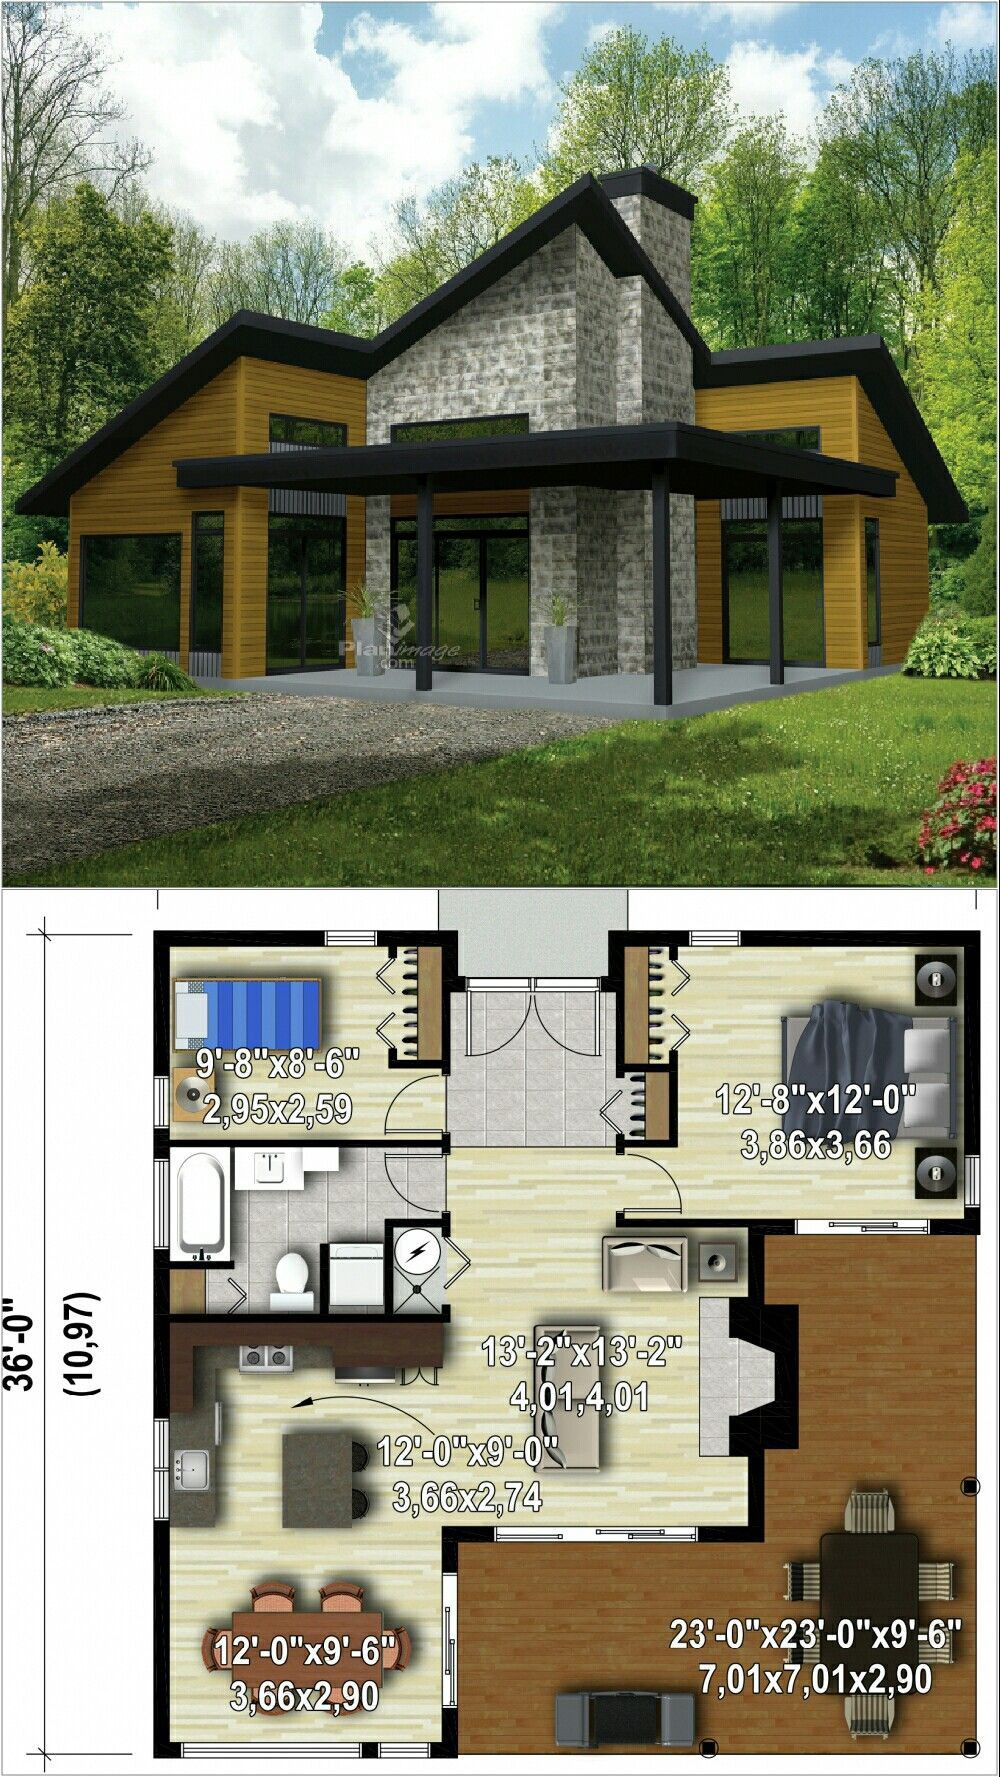 Free Home Architecture Design 2020 In 2021 Sims House Design Architectural House Plans House Architecture Design